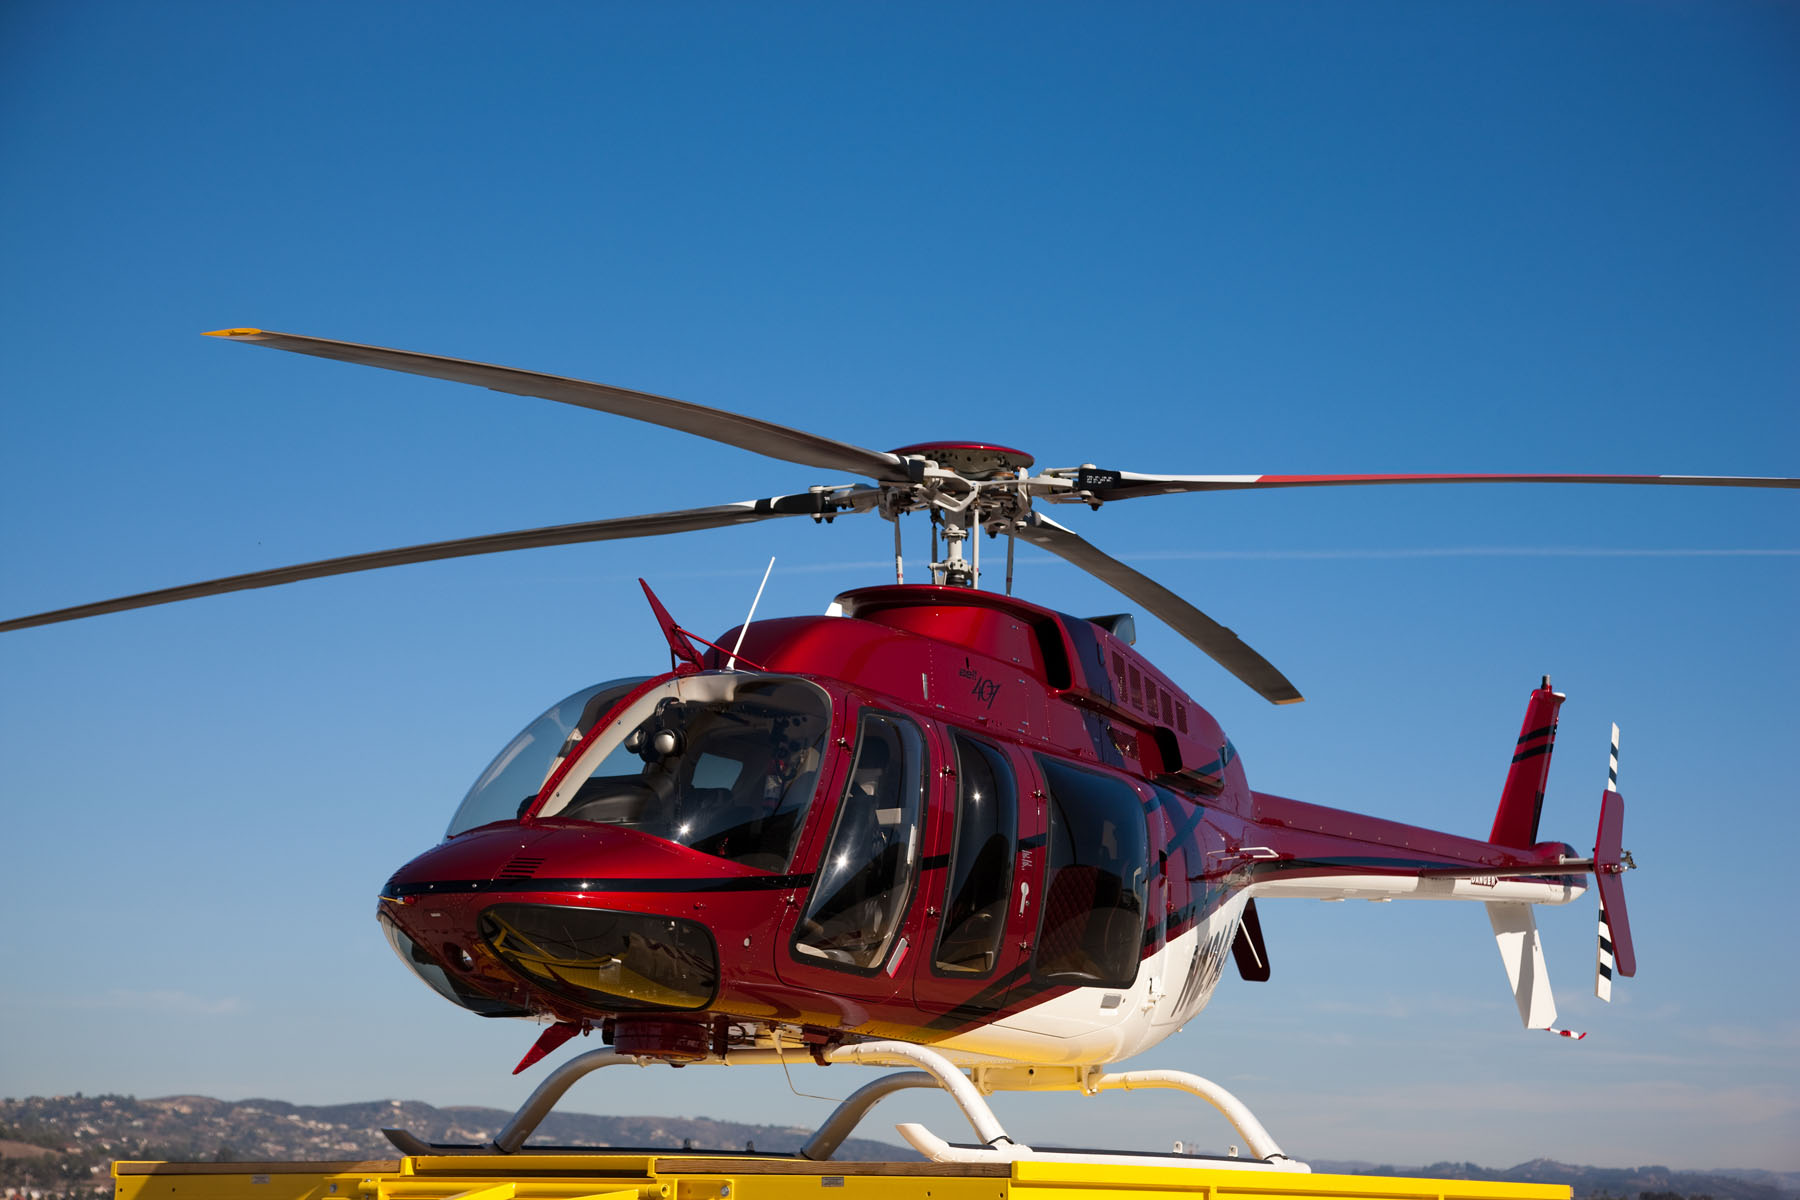 Bell Helicopter HD Wallpapers 12605   Amazing Wallpaperz 1800x1200